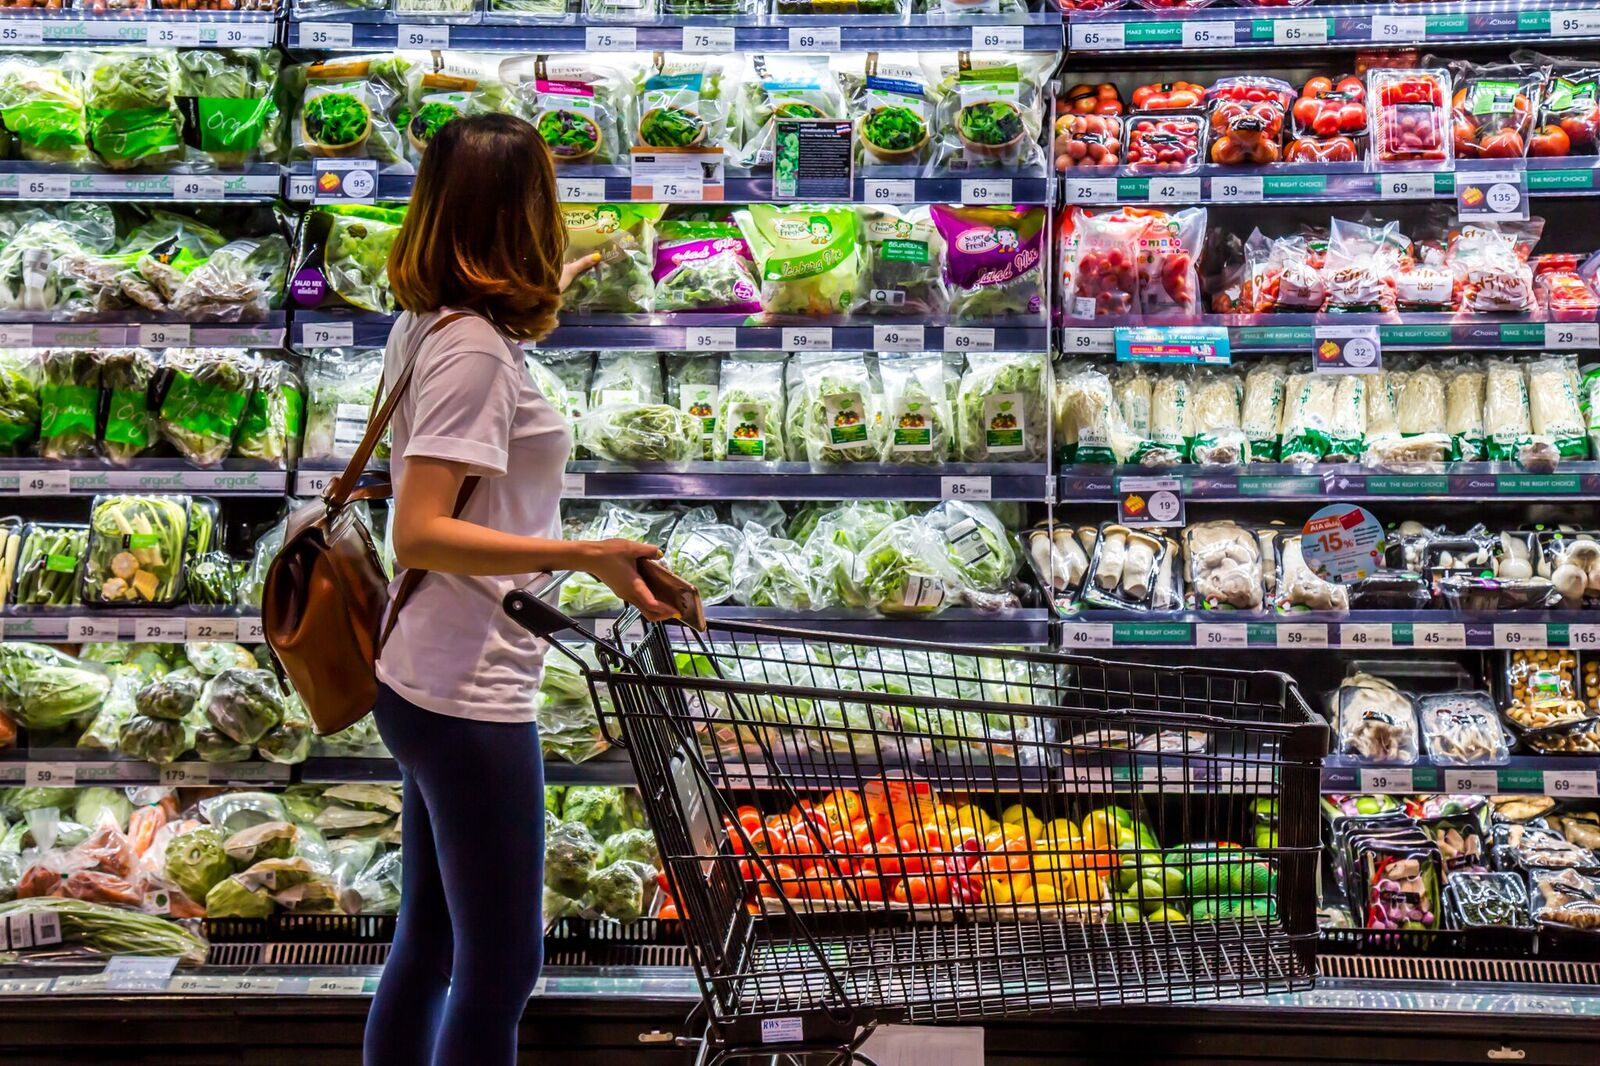 Woman looking at vegetable in supermarket | Photo: Shutterstock